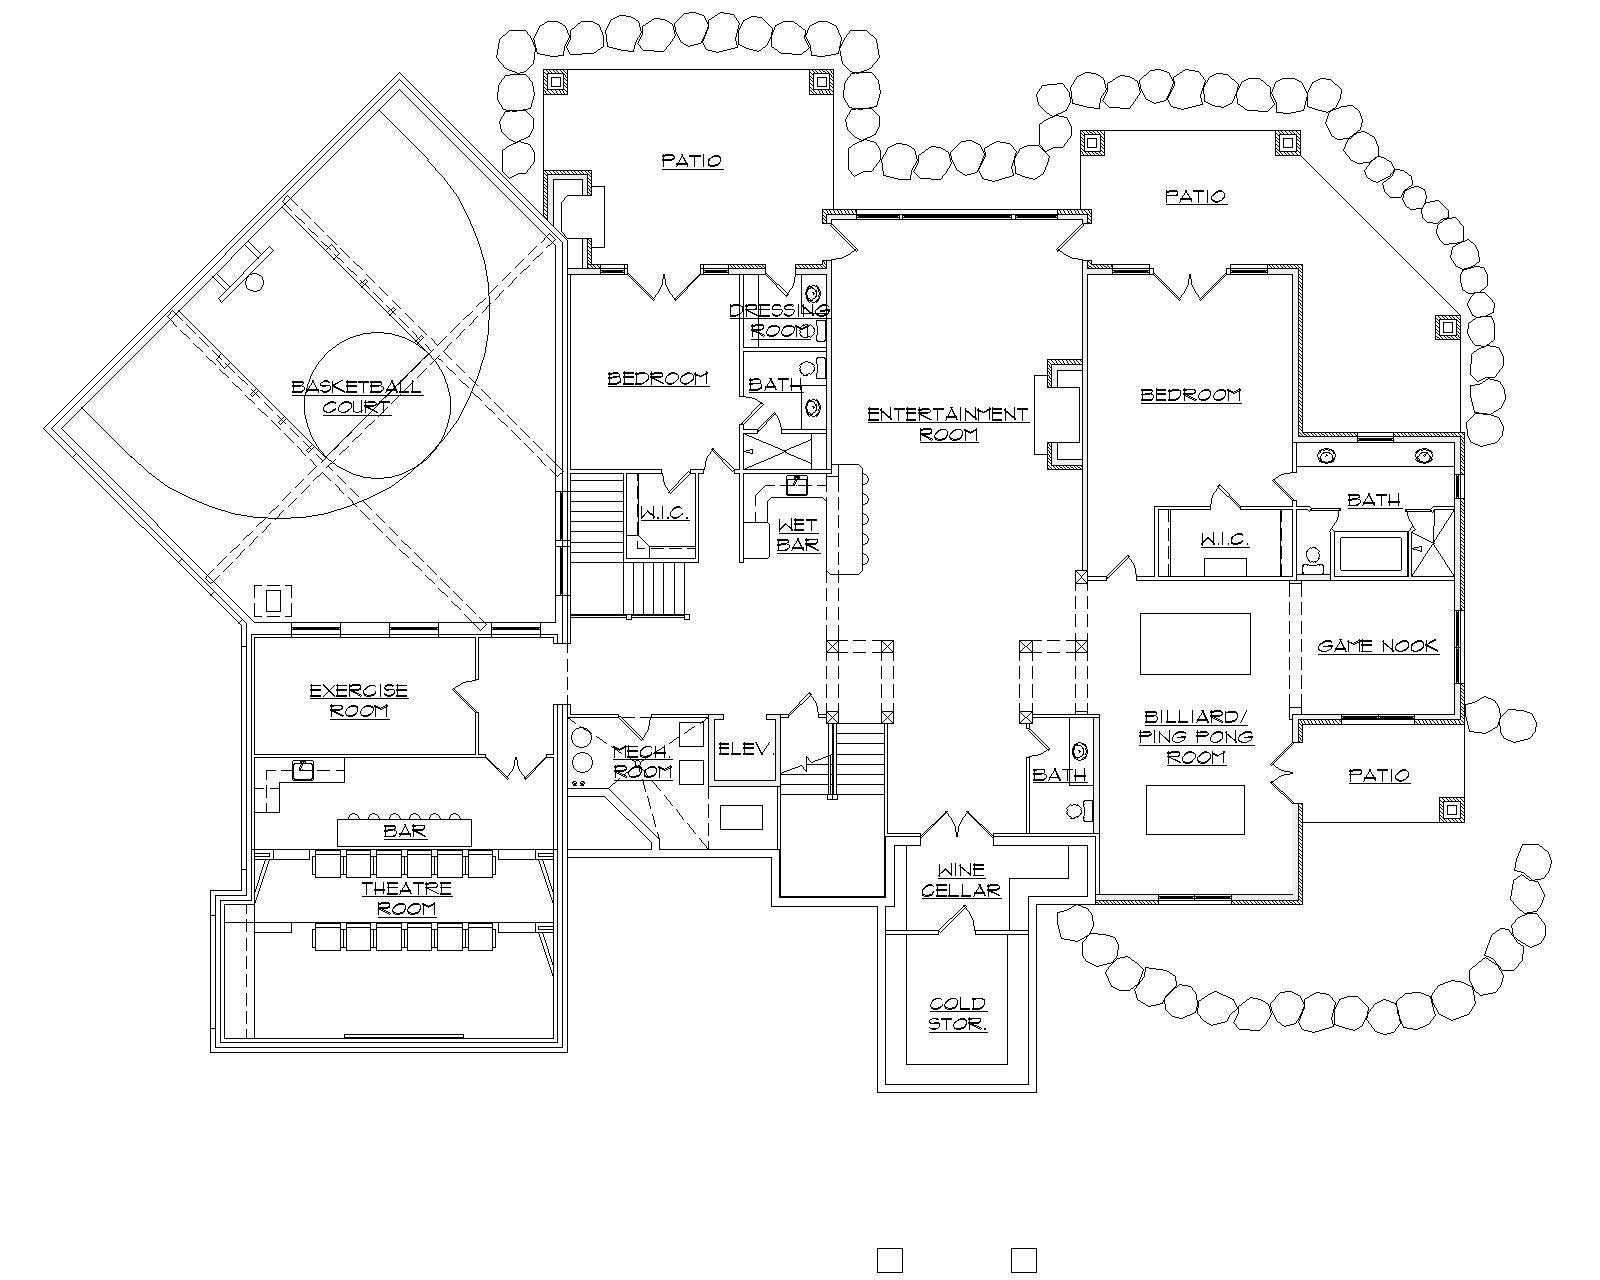 house plans with indoor basketball court how to costs ForIndoor Basketball Court Plans